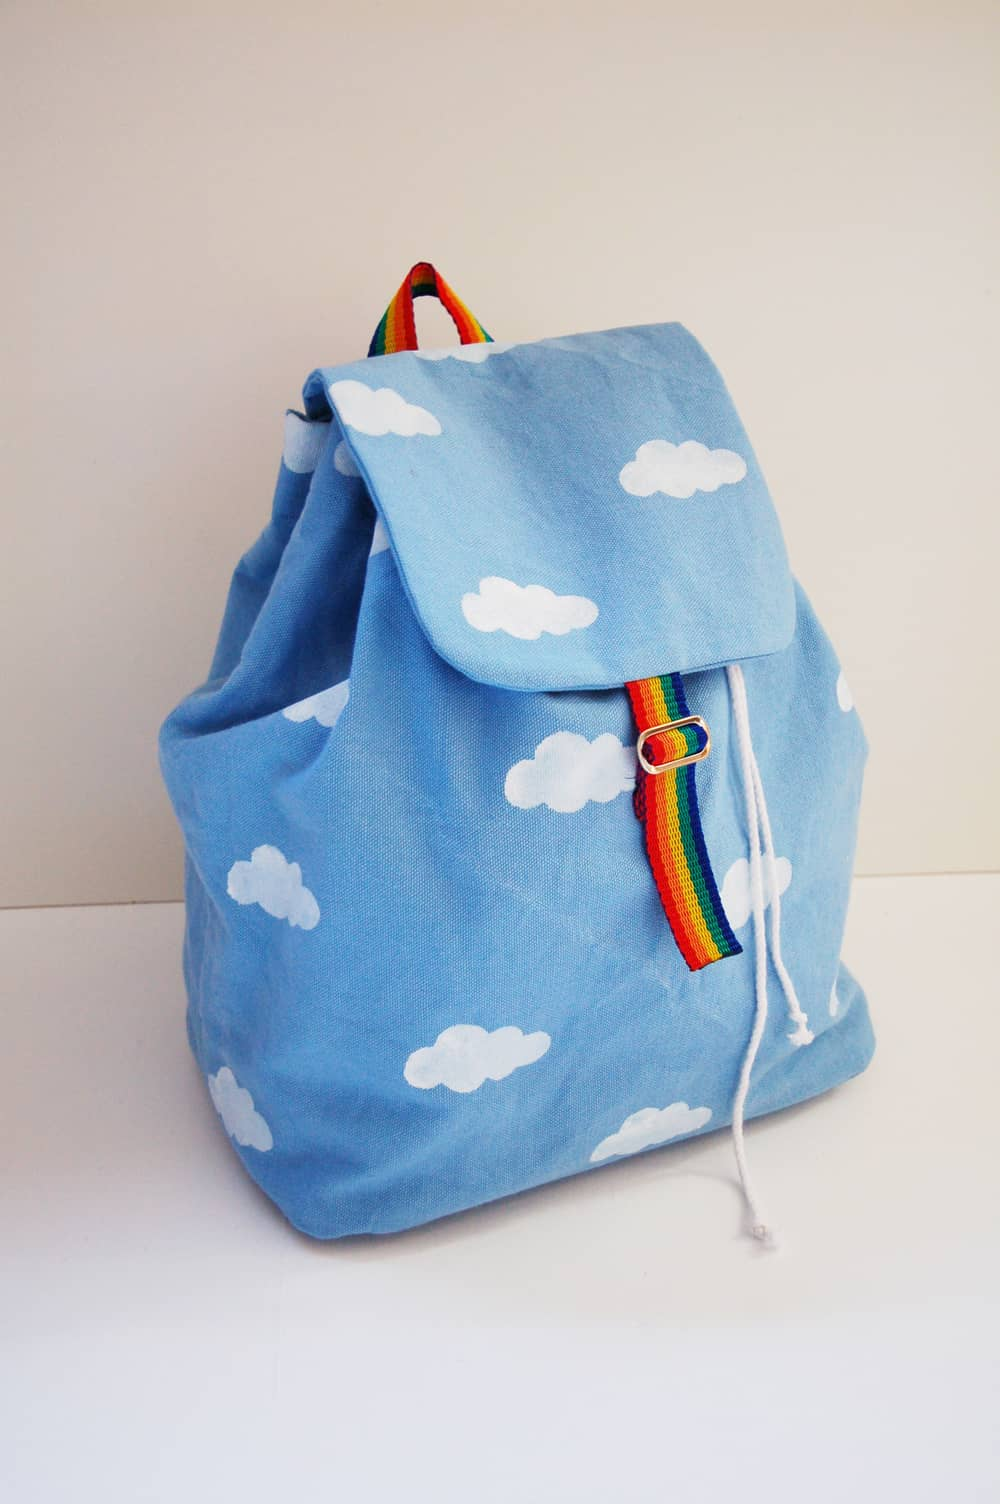 13 Trendy and Affordable DIY Backpacks 5c95f5866cb83